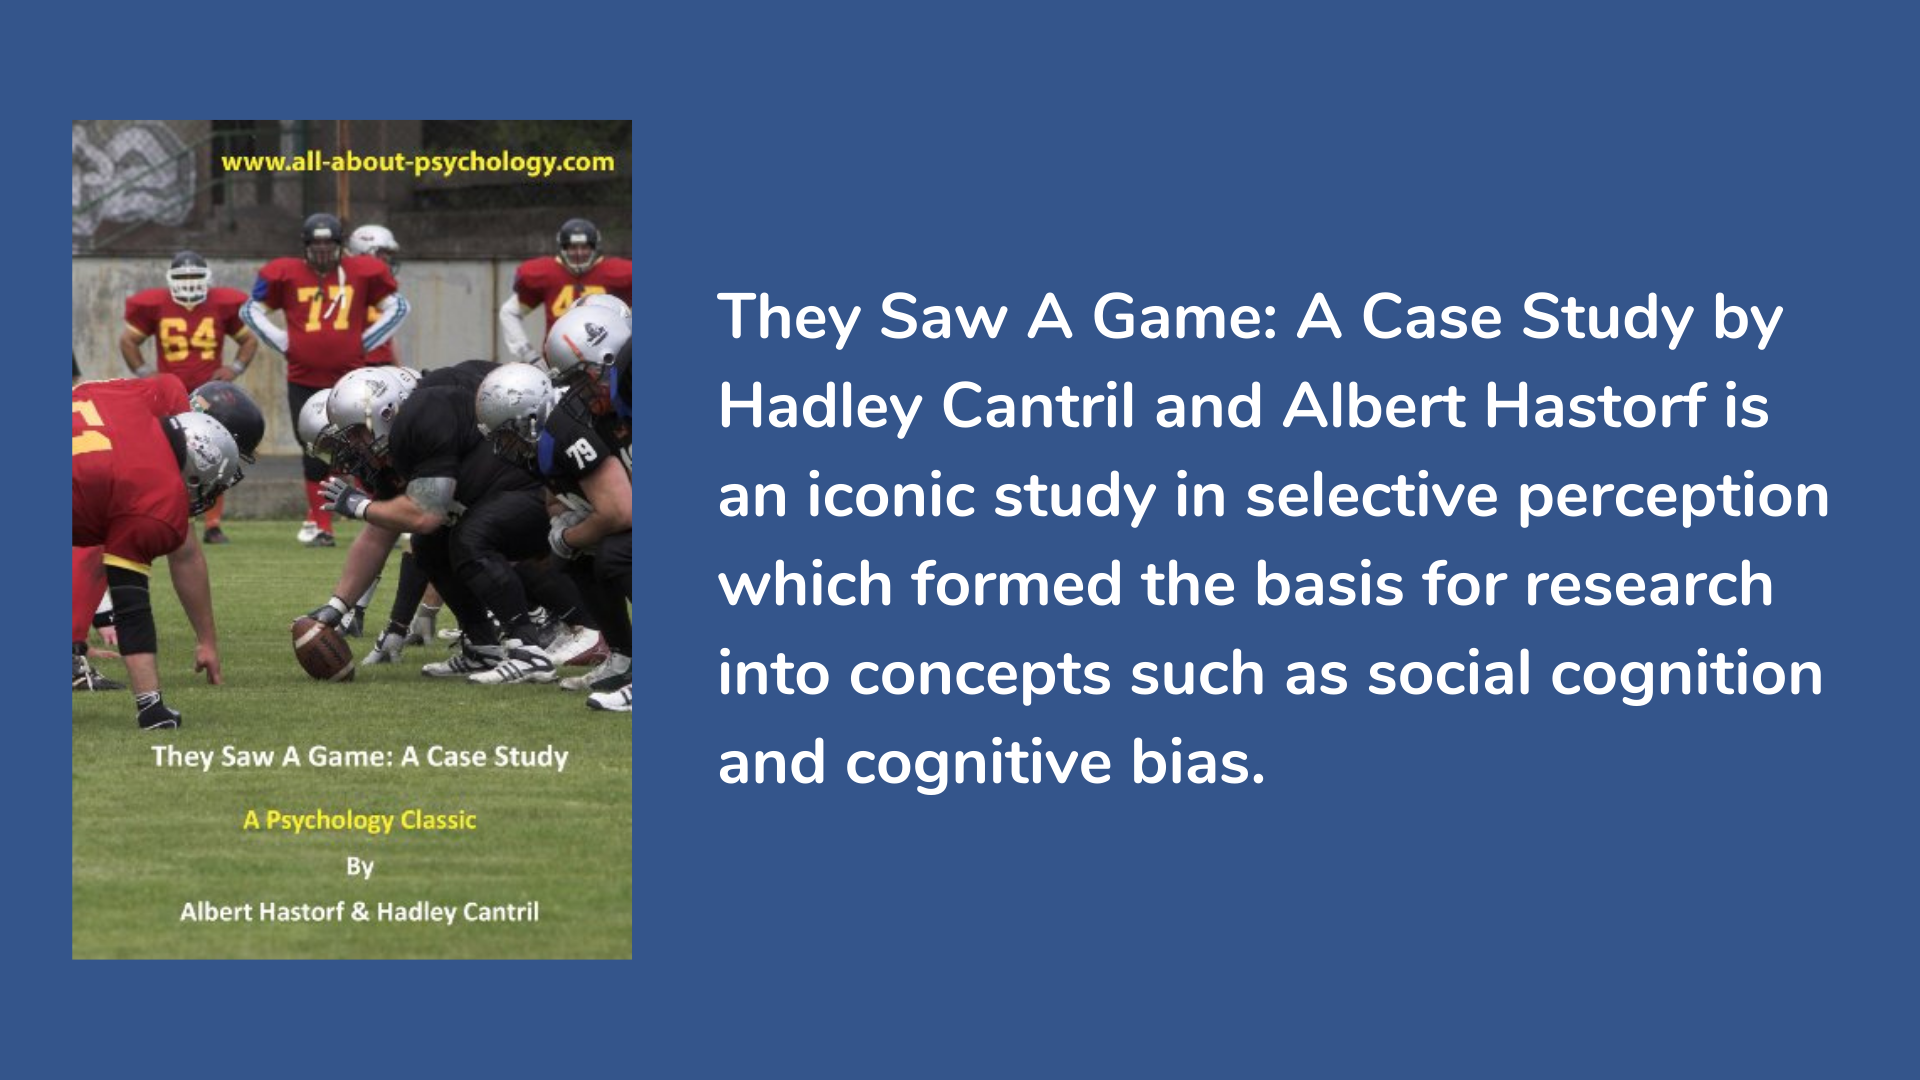 They Saw A Game: A Case Study by Hadley Cantril and Albert Hastorf